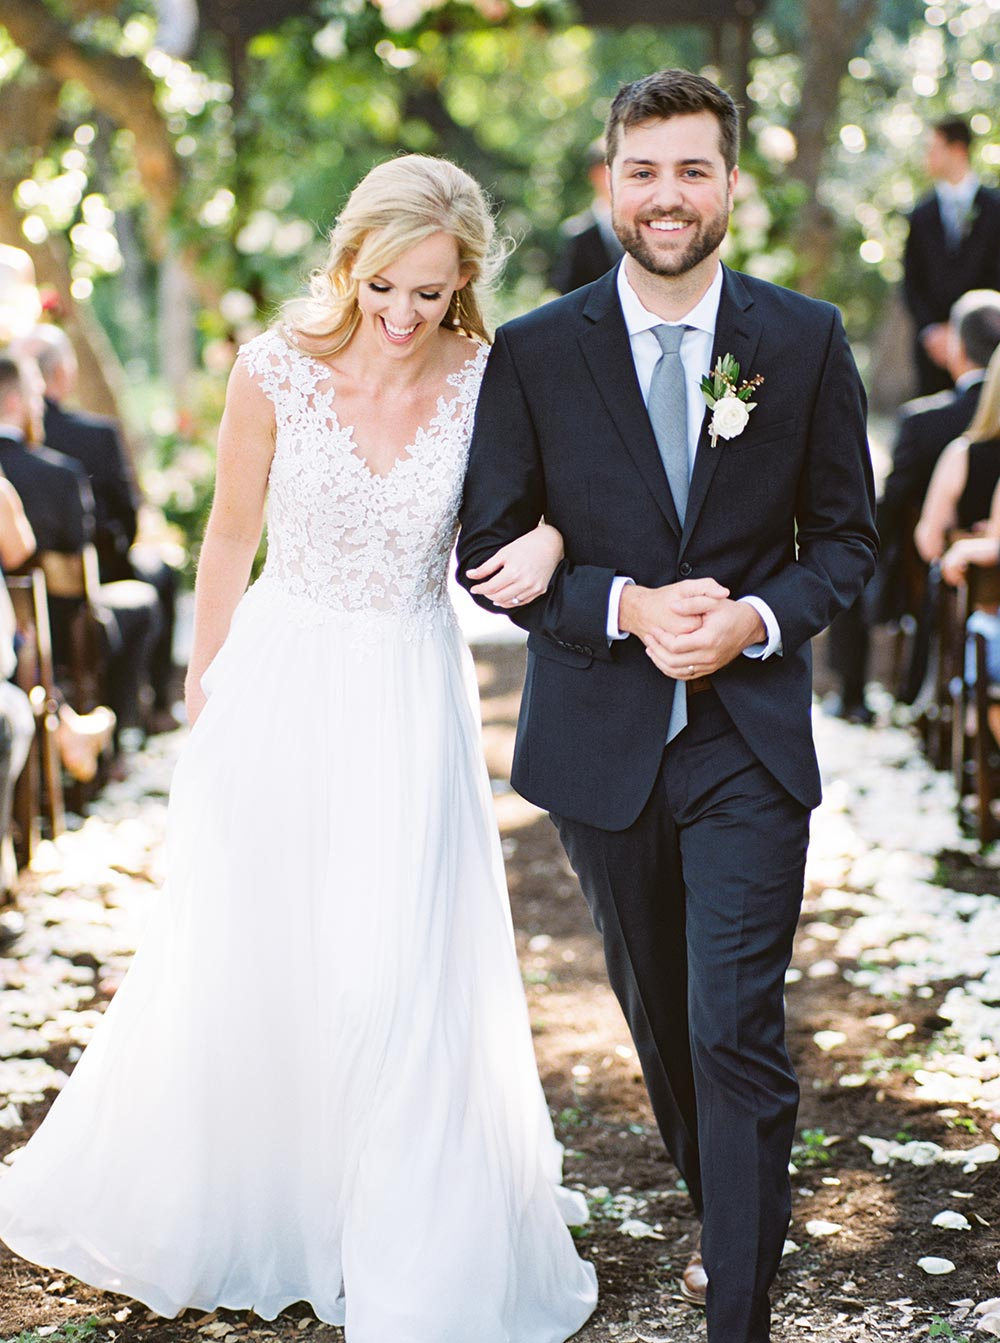 outdoor rustic chic wedding ceremony at Addison Grove